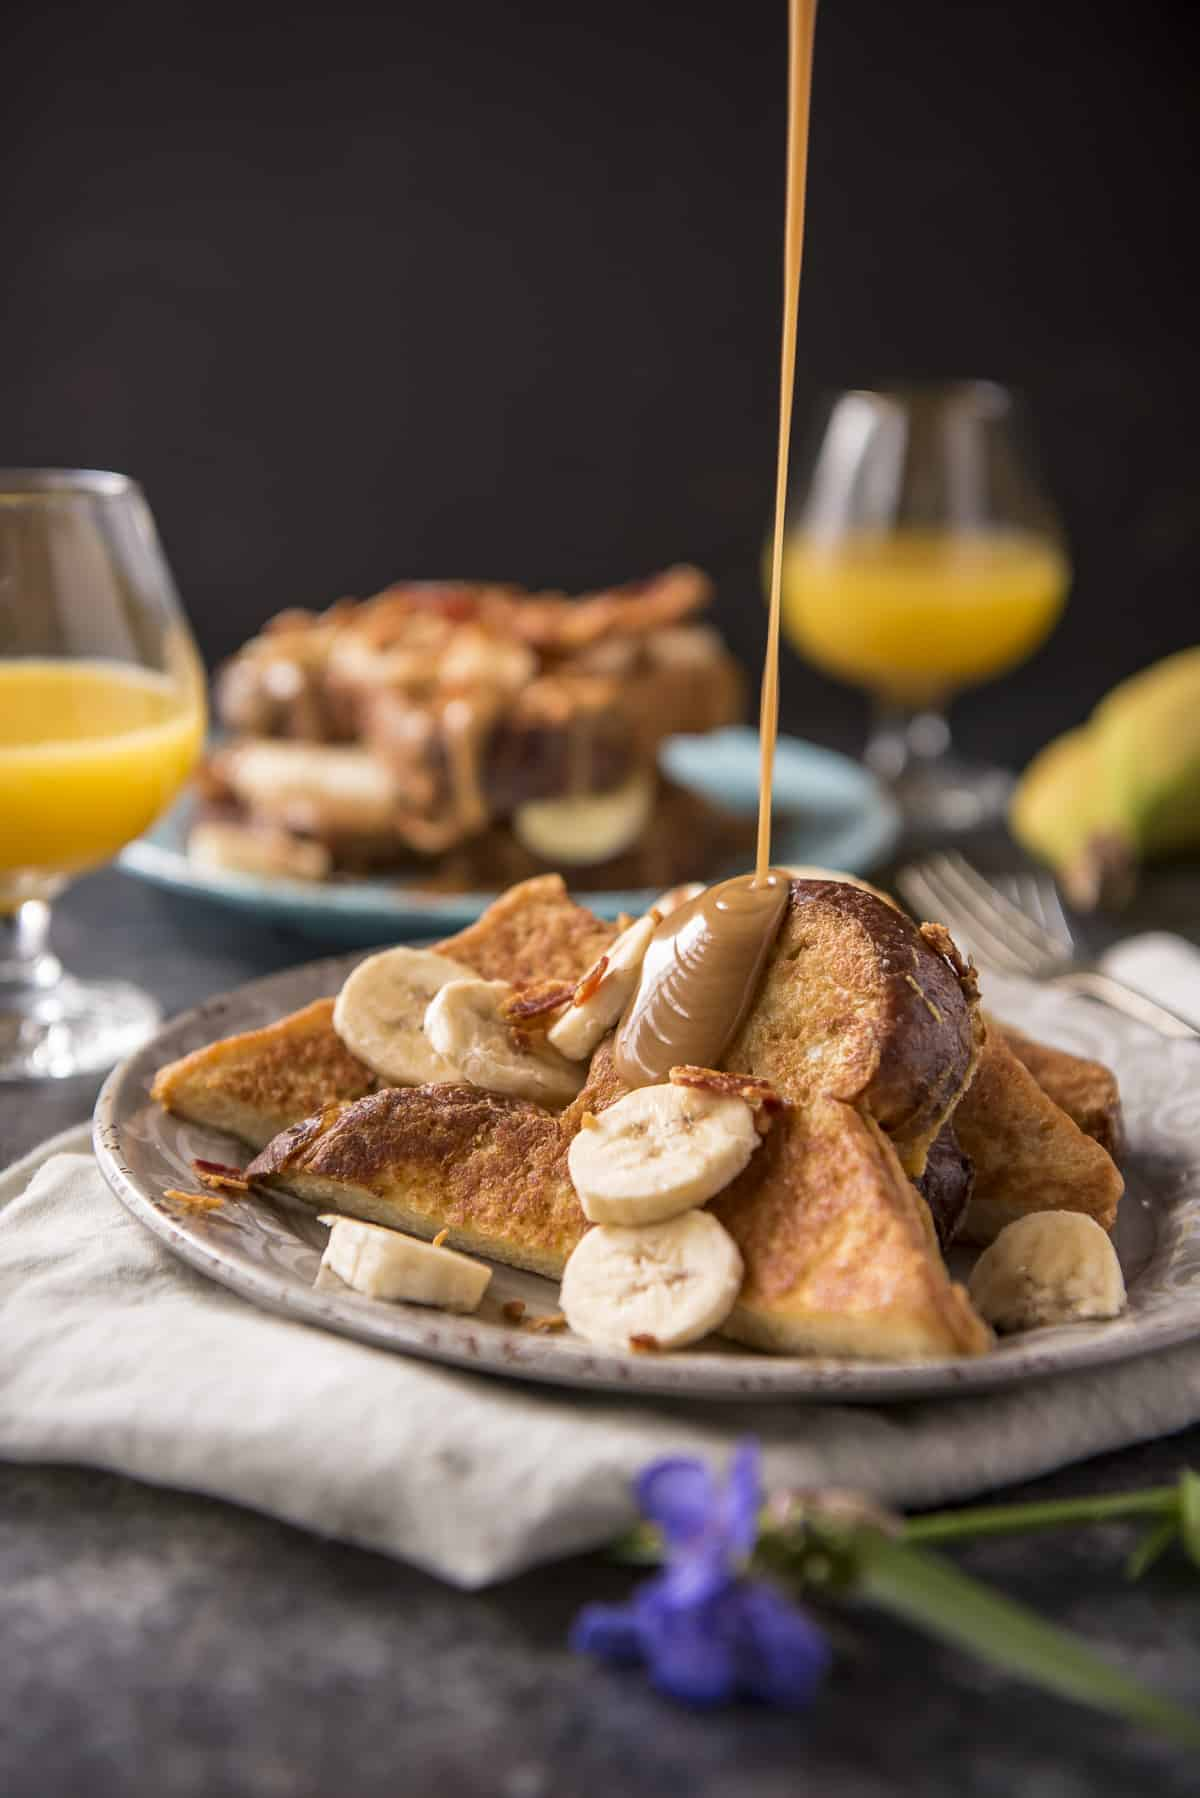 Peanut Butter, Banana, & Bacon Brioche French Toast (Elvis-Style)